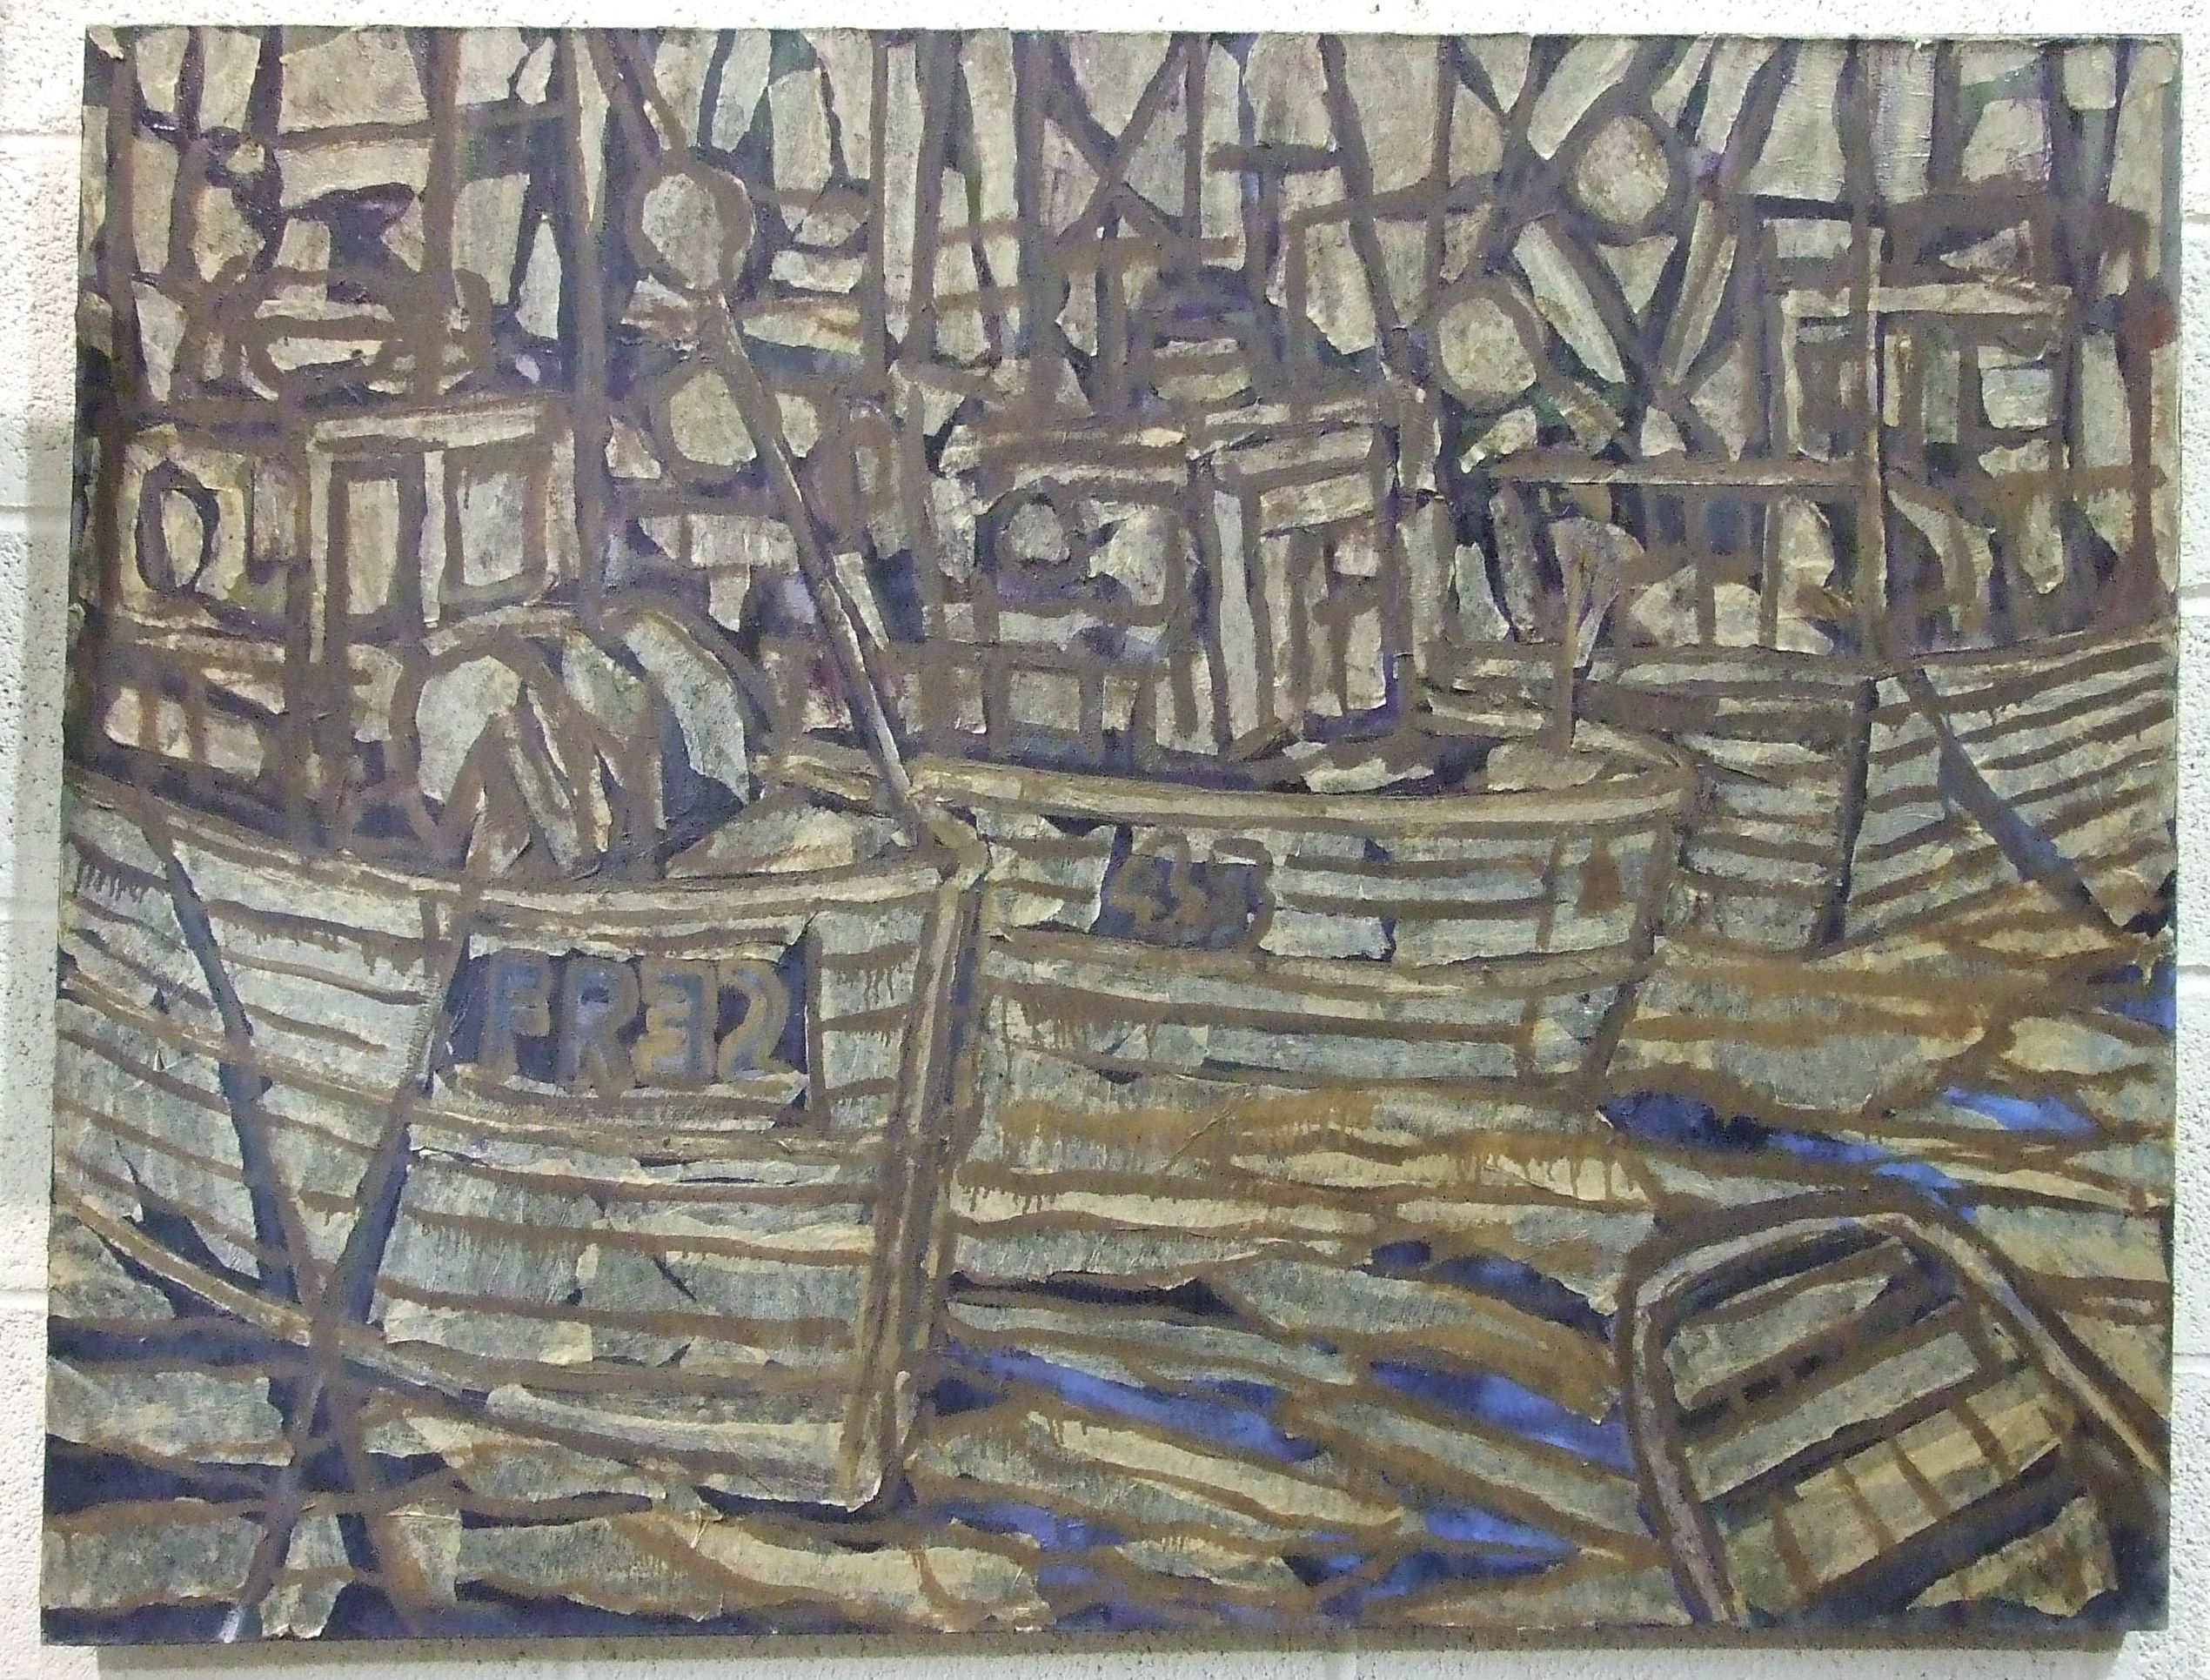 Lot 7 - •Martin Skipper (20th century) DECAYING FLEET Oil on canvas, signed on the reverse, 92 x 122cm.